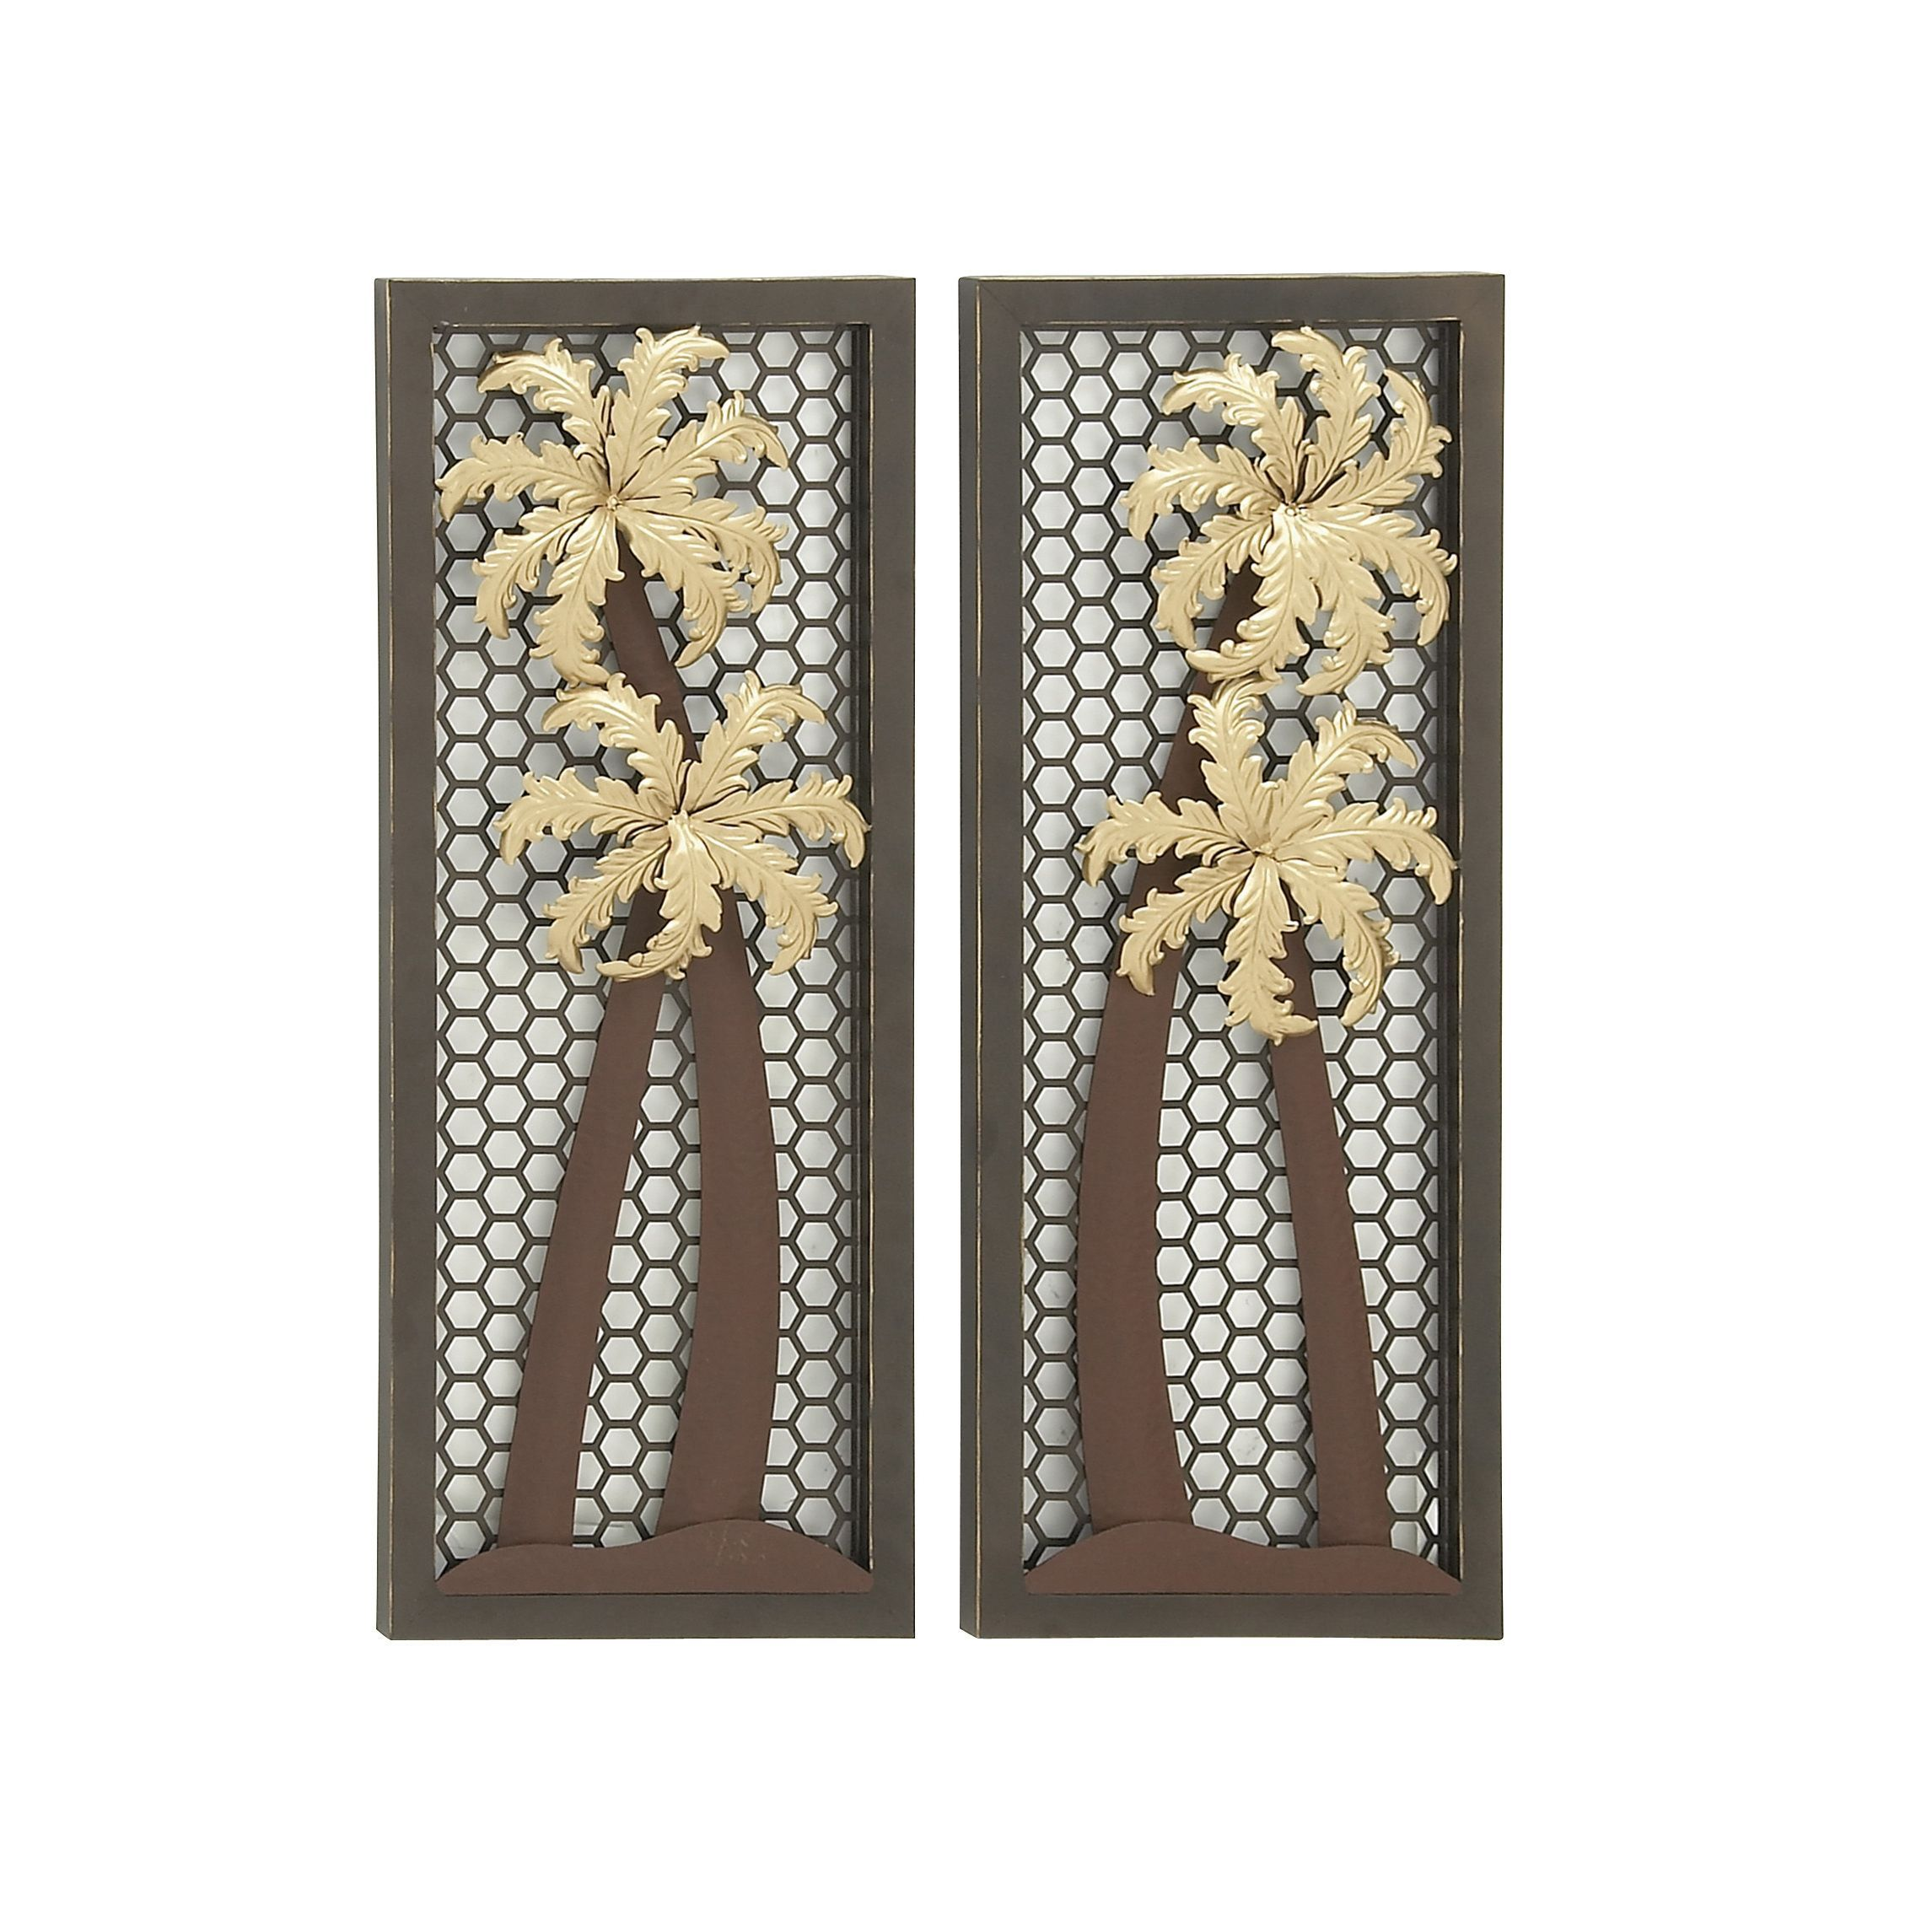 Iron Decorative Wall Pieces Palm Trees Metal Wall Decor 2 Assorted Metal Wall Decor Brown